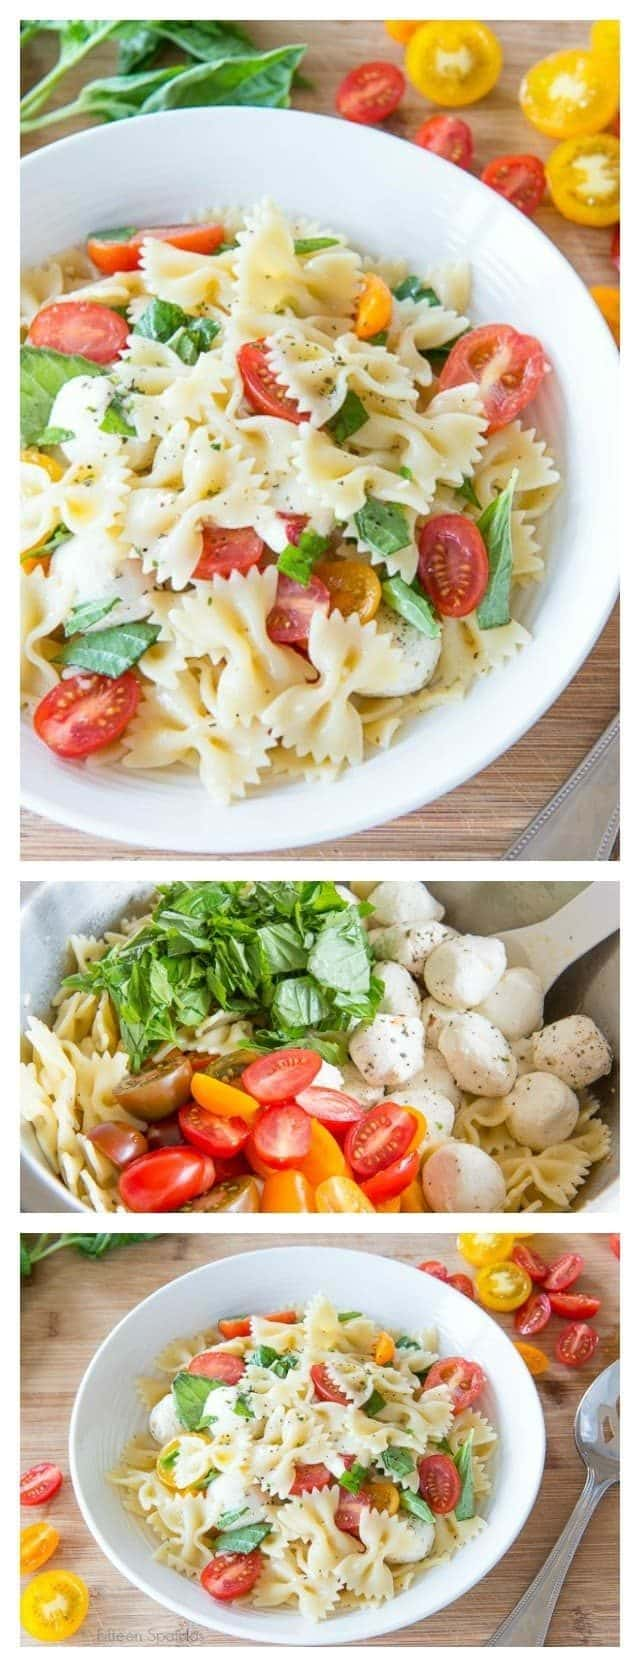 This Caprese Pasta Salad has a classic combination of fresh tomatoes, basil, and mozzarella cheese, tied together with a simple vinaigrette. Perfect for summer potlucks and picnics!